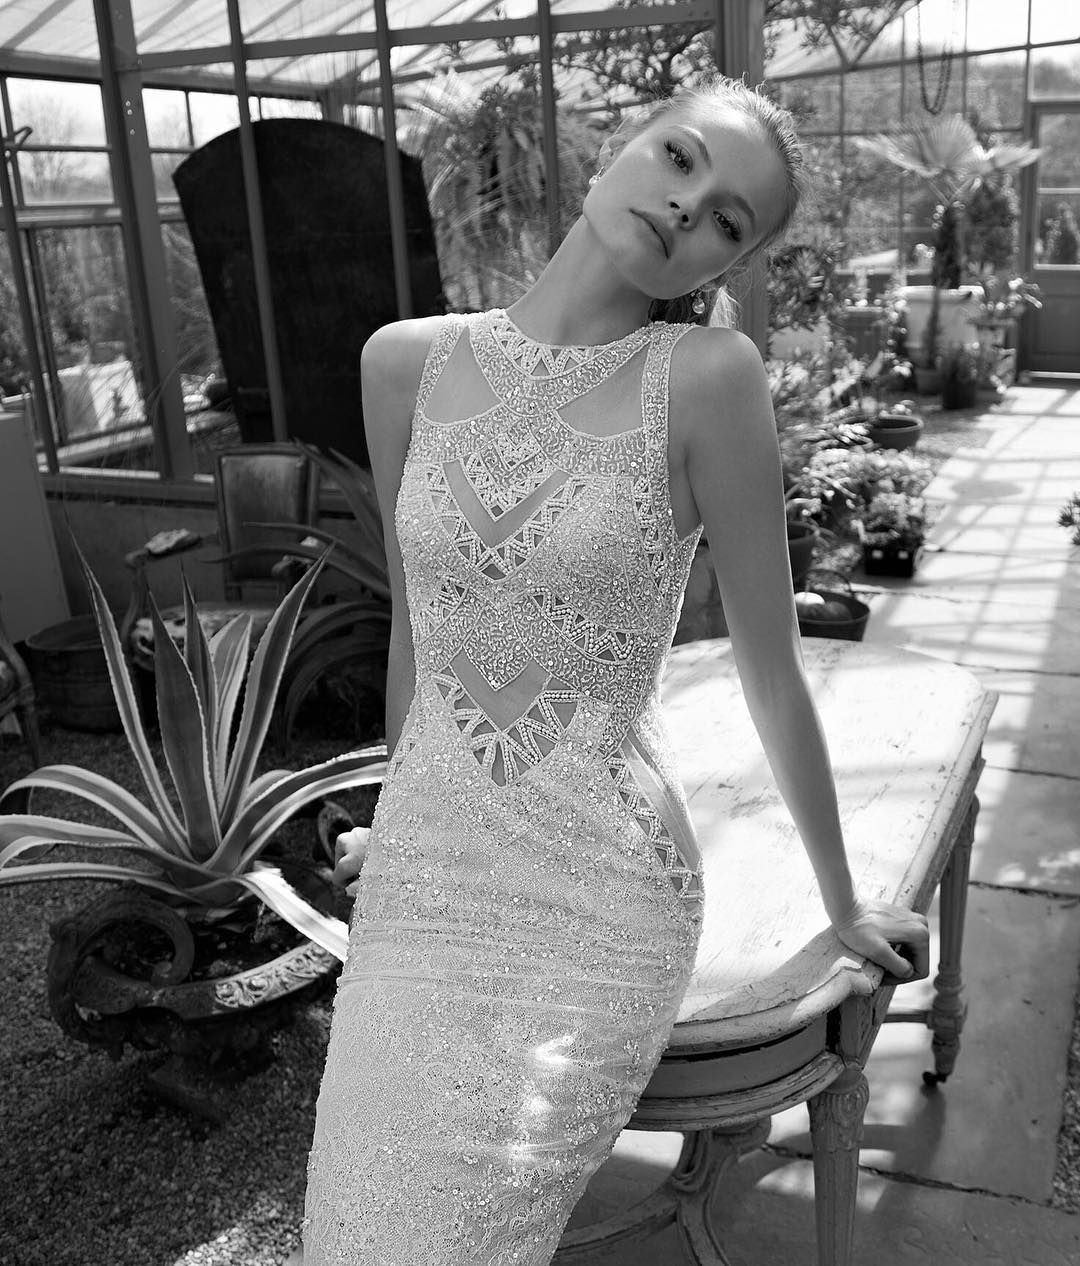 Best wedding dresses aliexpress  Pin by Özlem Yitmen on Fashion  Pinterest  Instagram and Fashion